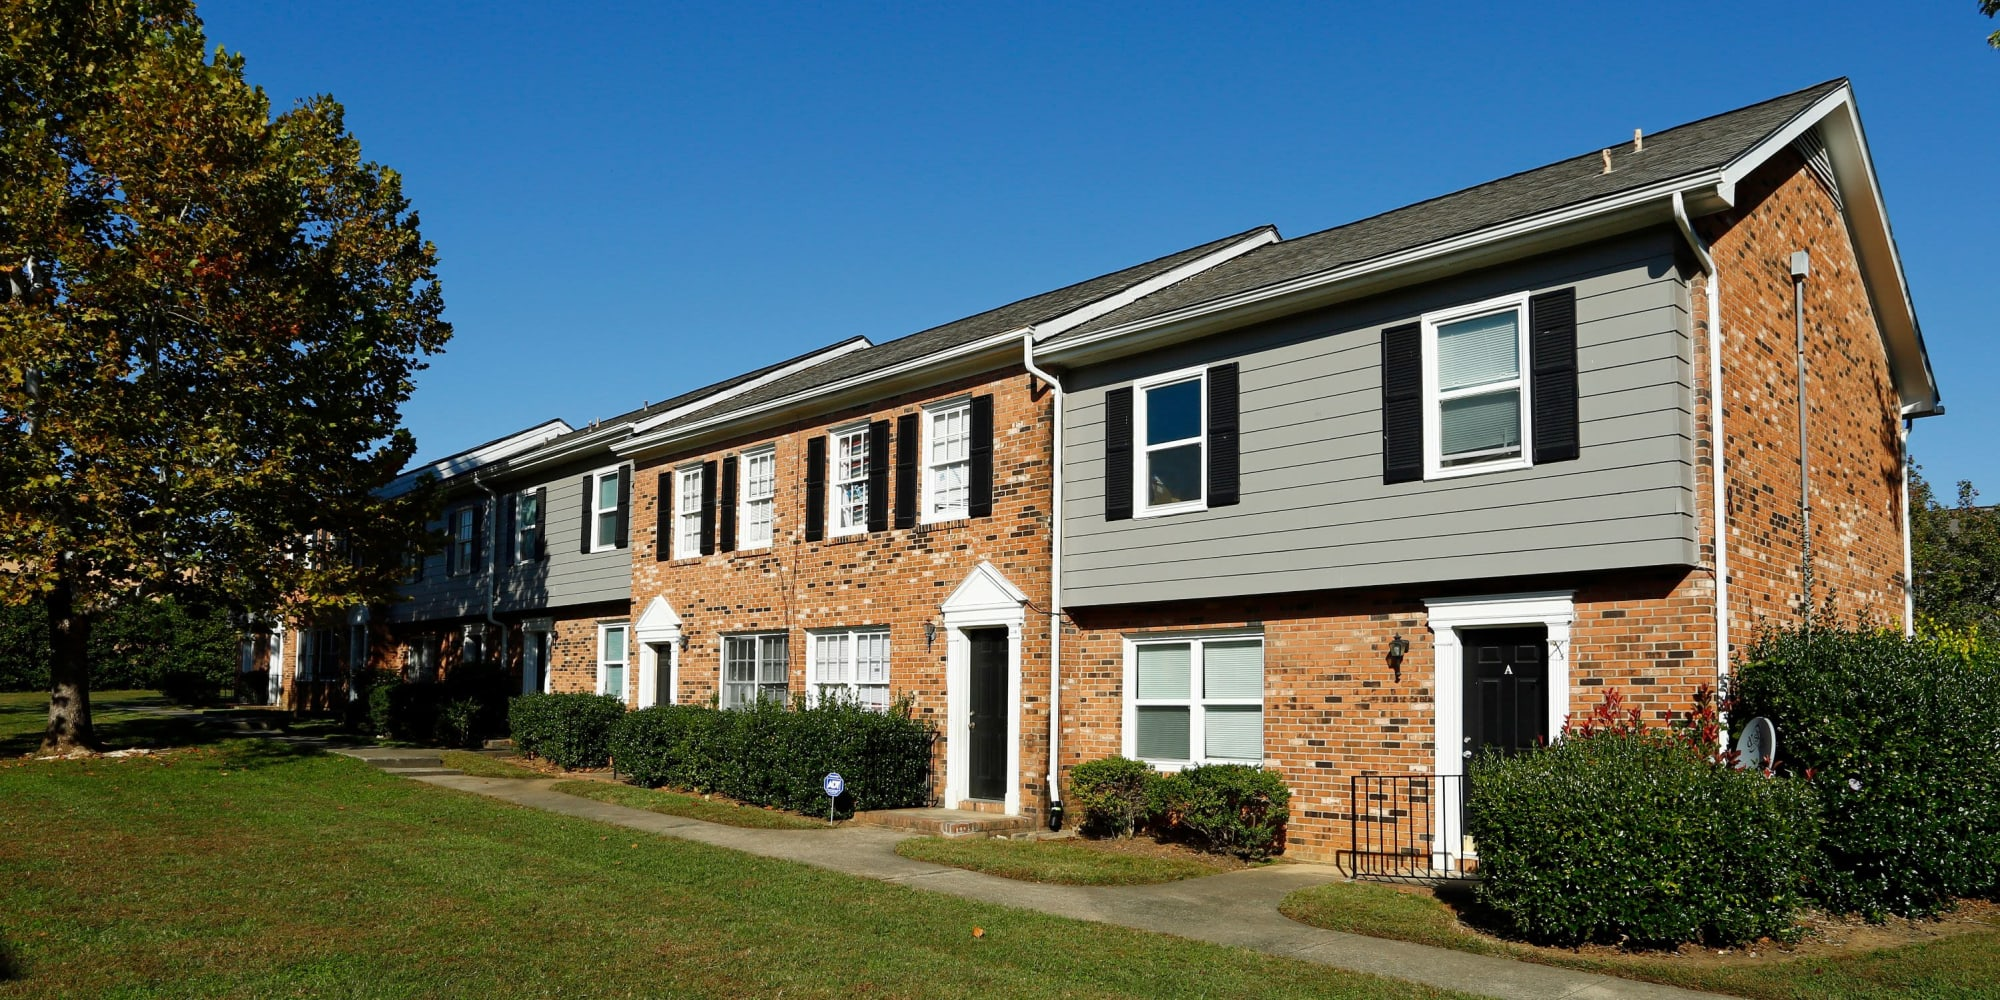 Townhomes at Rippling Stream Townhomes in Durham, North Carolina